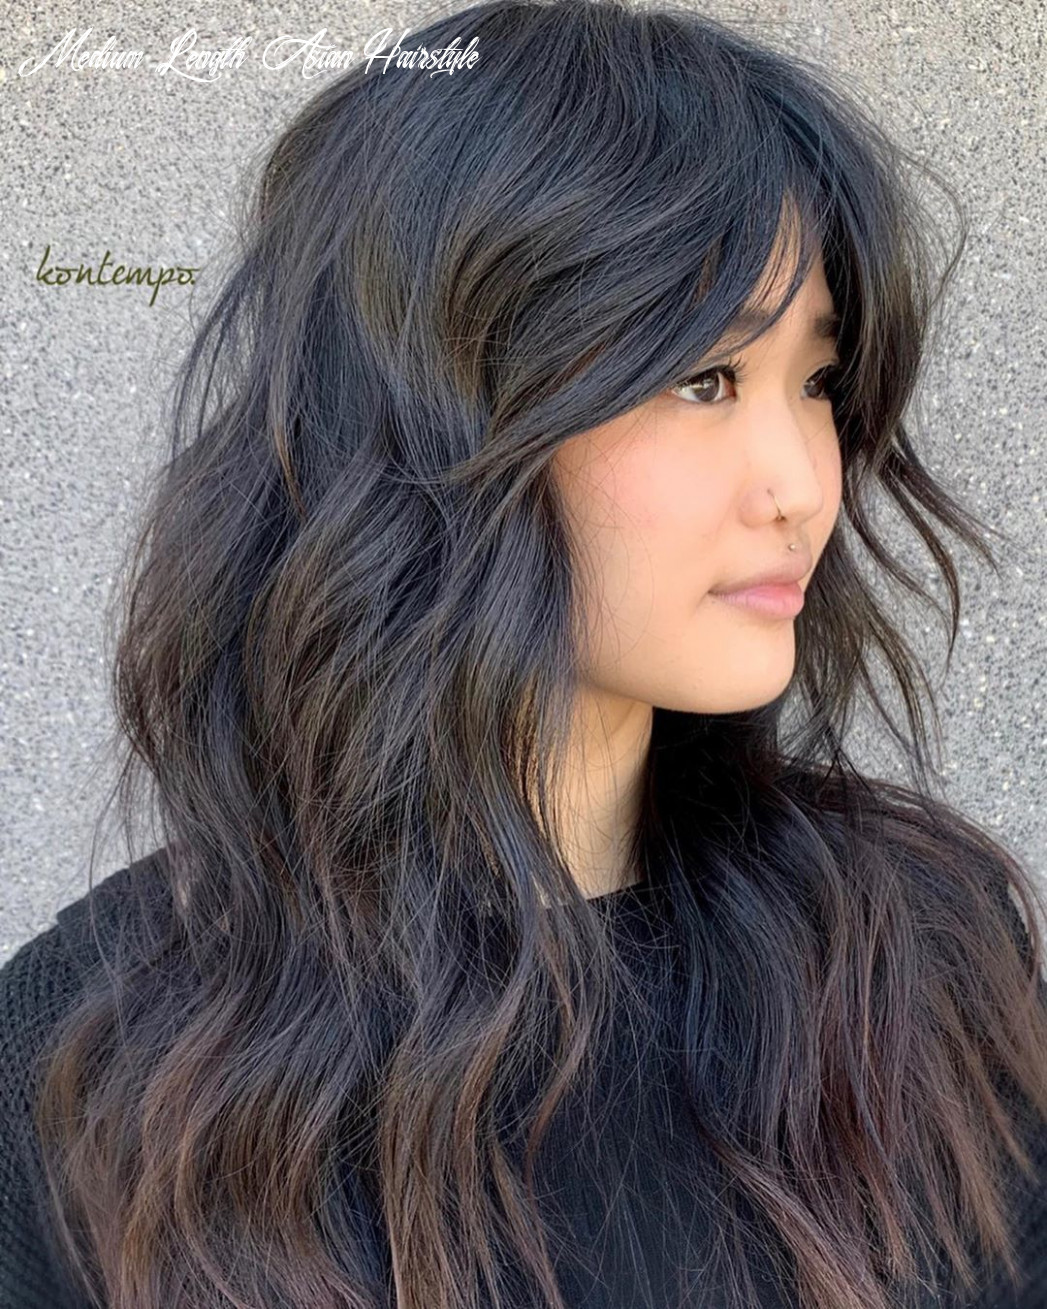 Asian hairstyles for women: 10 trendy and easy looks to try medium length asian hairstyle